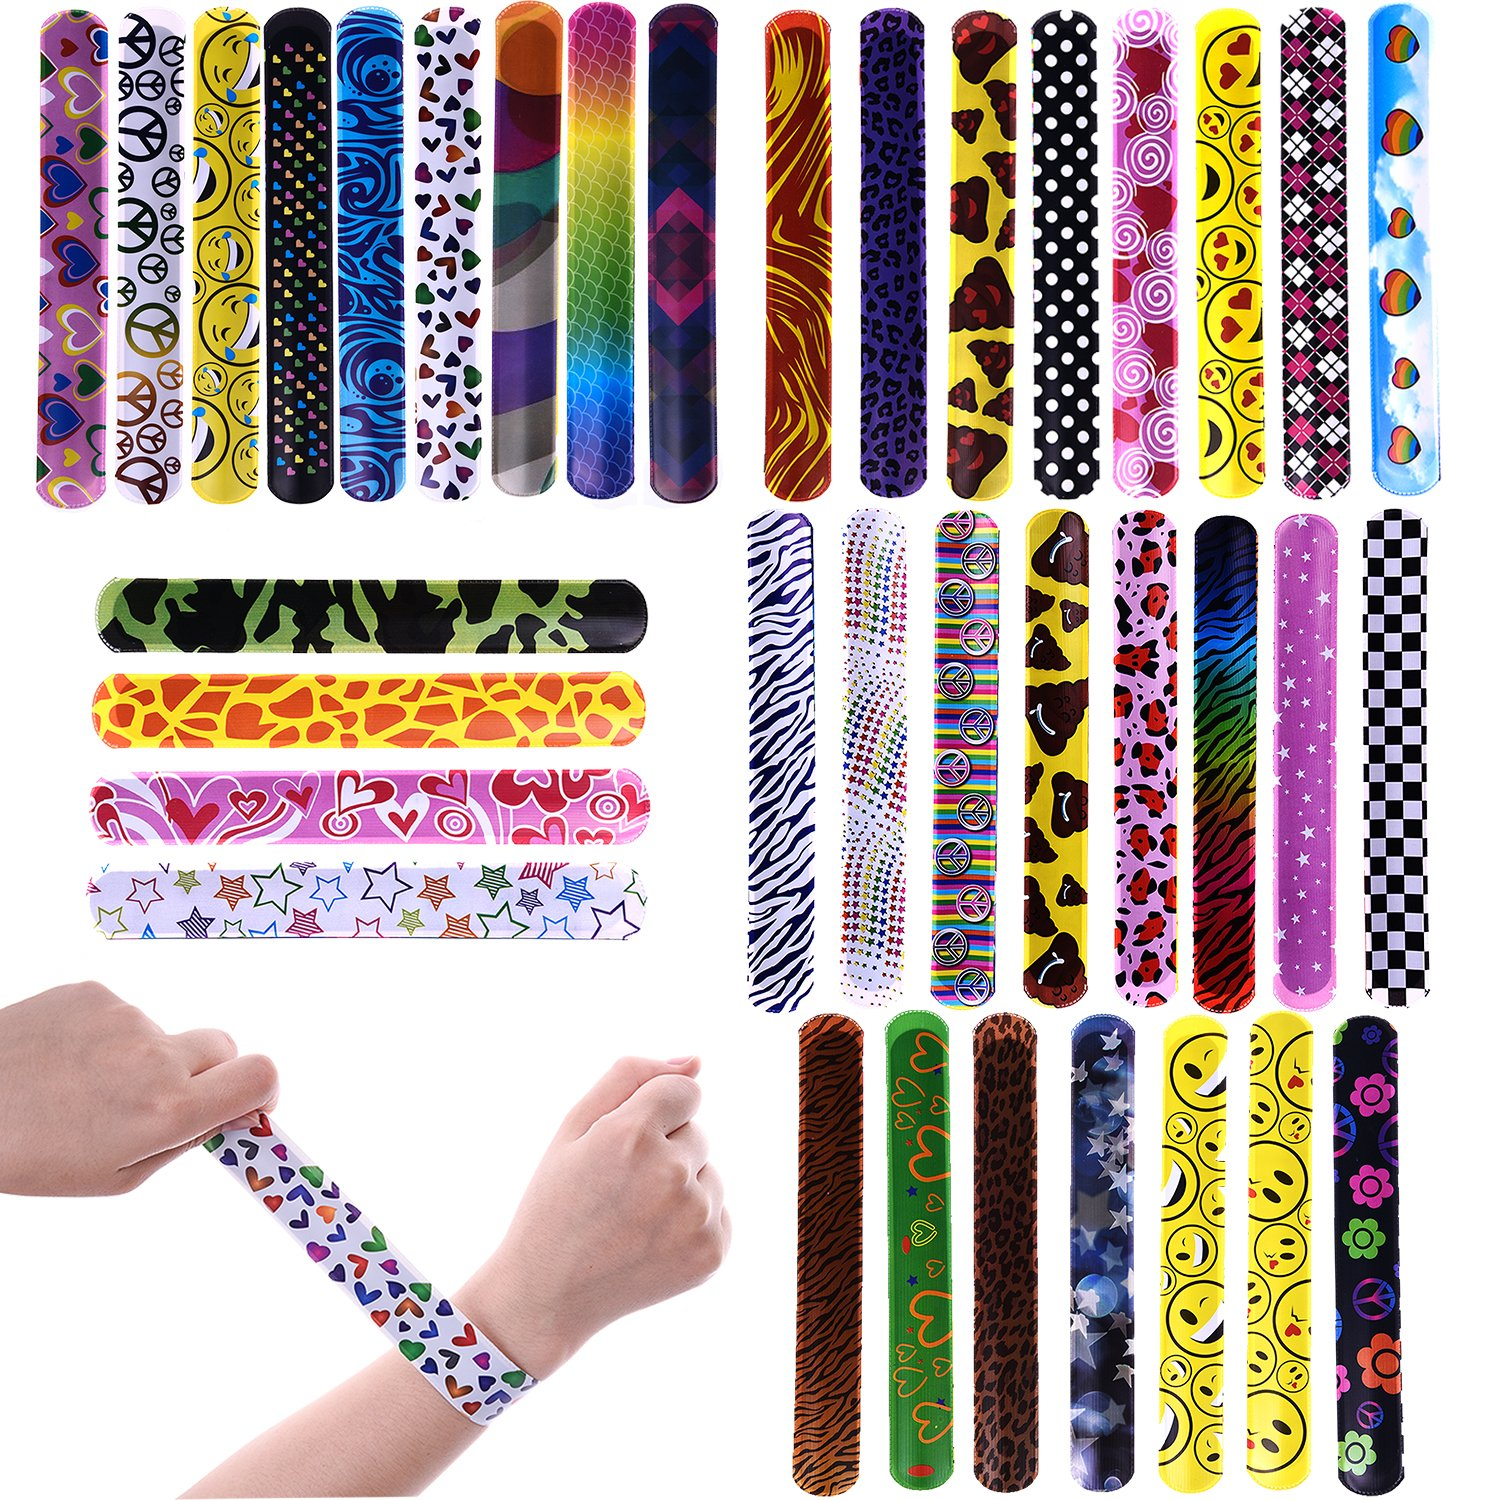 FUN LITTLE TOYS 72PCs Slap Bracelets for Party Favors Pack with Colorful Hearts Emoji Animal Print Design Retro Slap Bands for Kids Prizes, Kids Party Favors, Pinata Fillers by FUN LITTLE TOYS